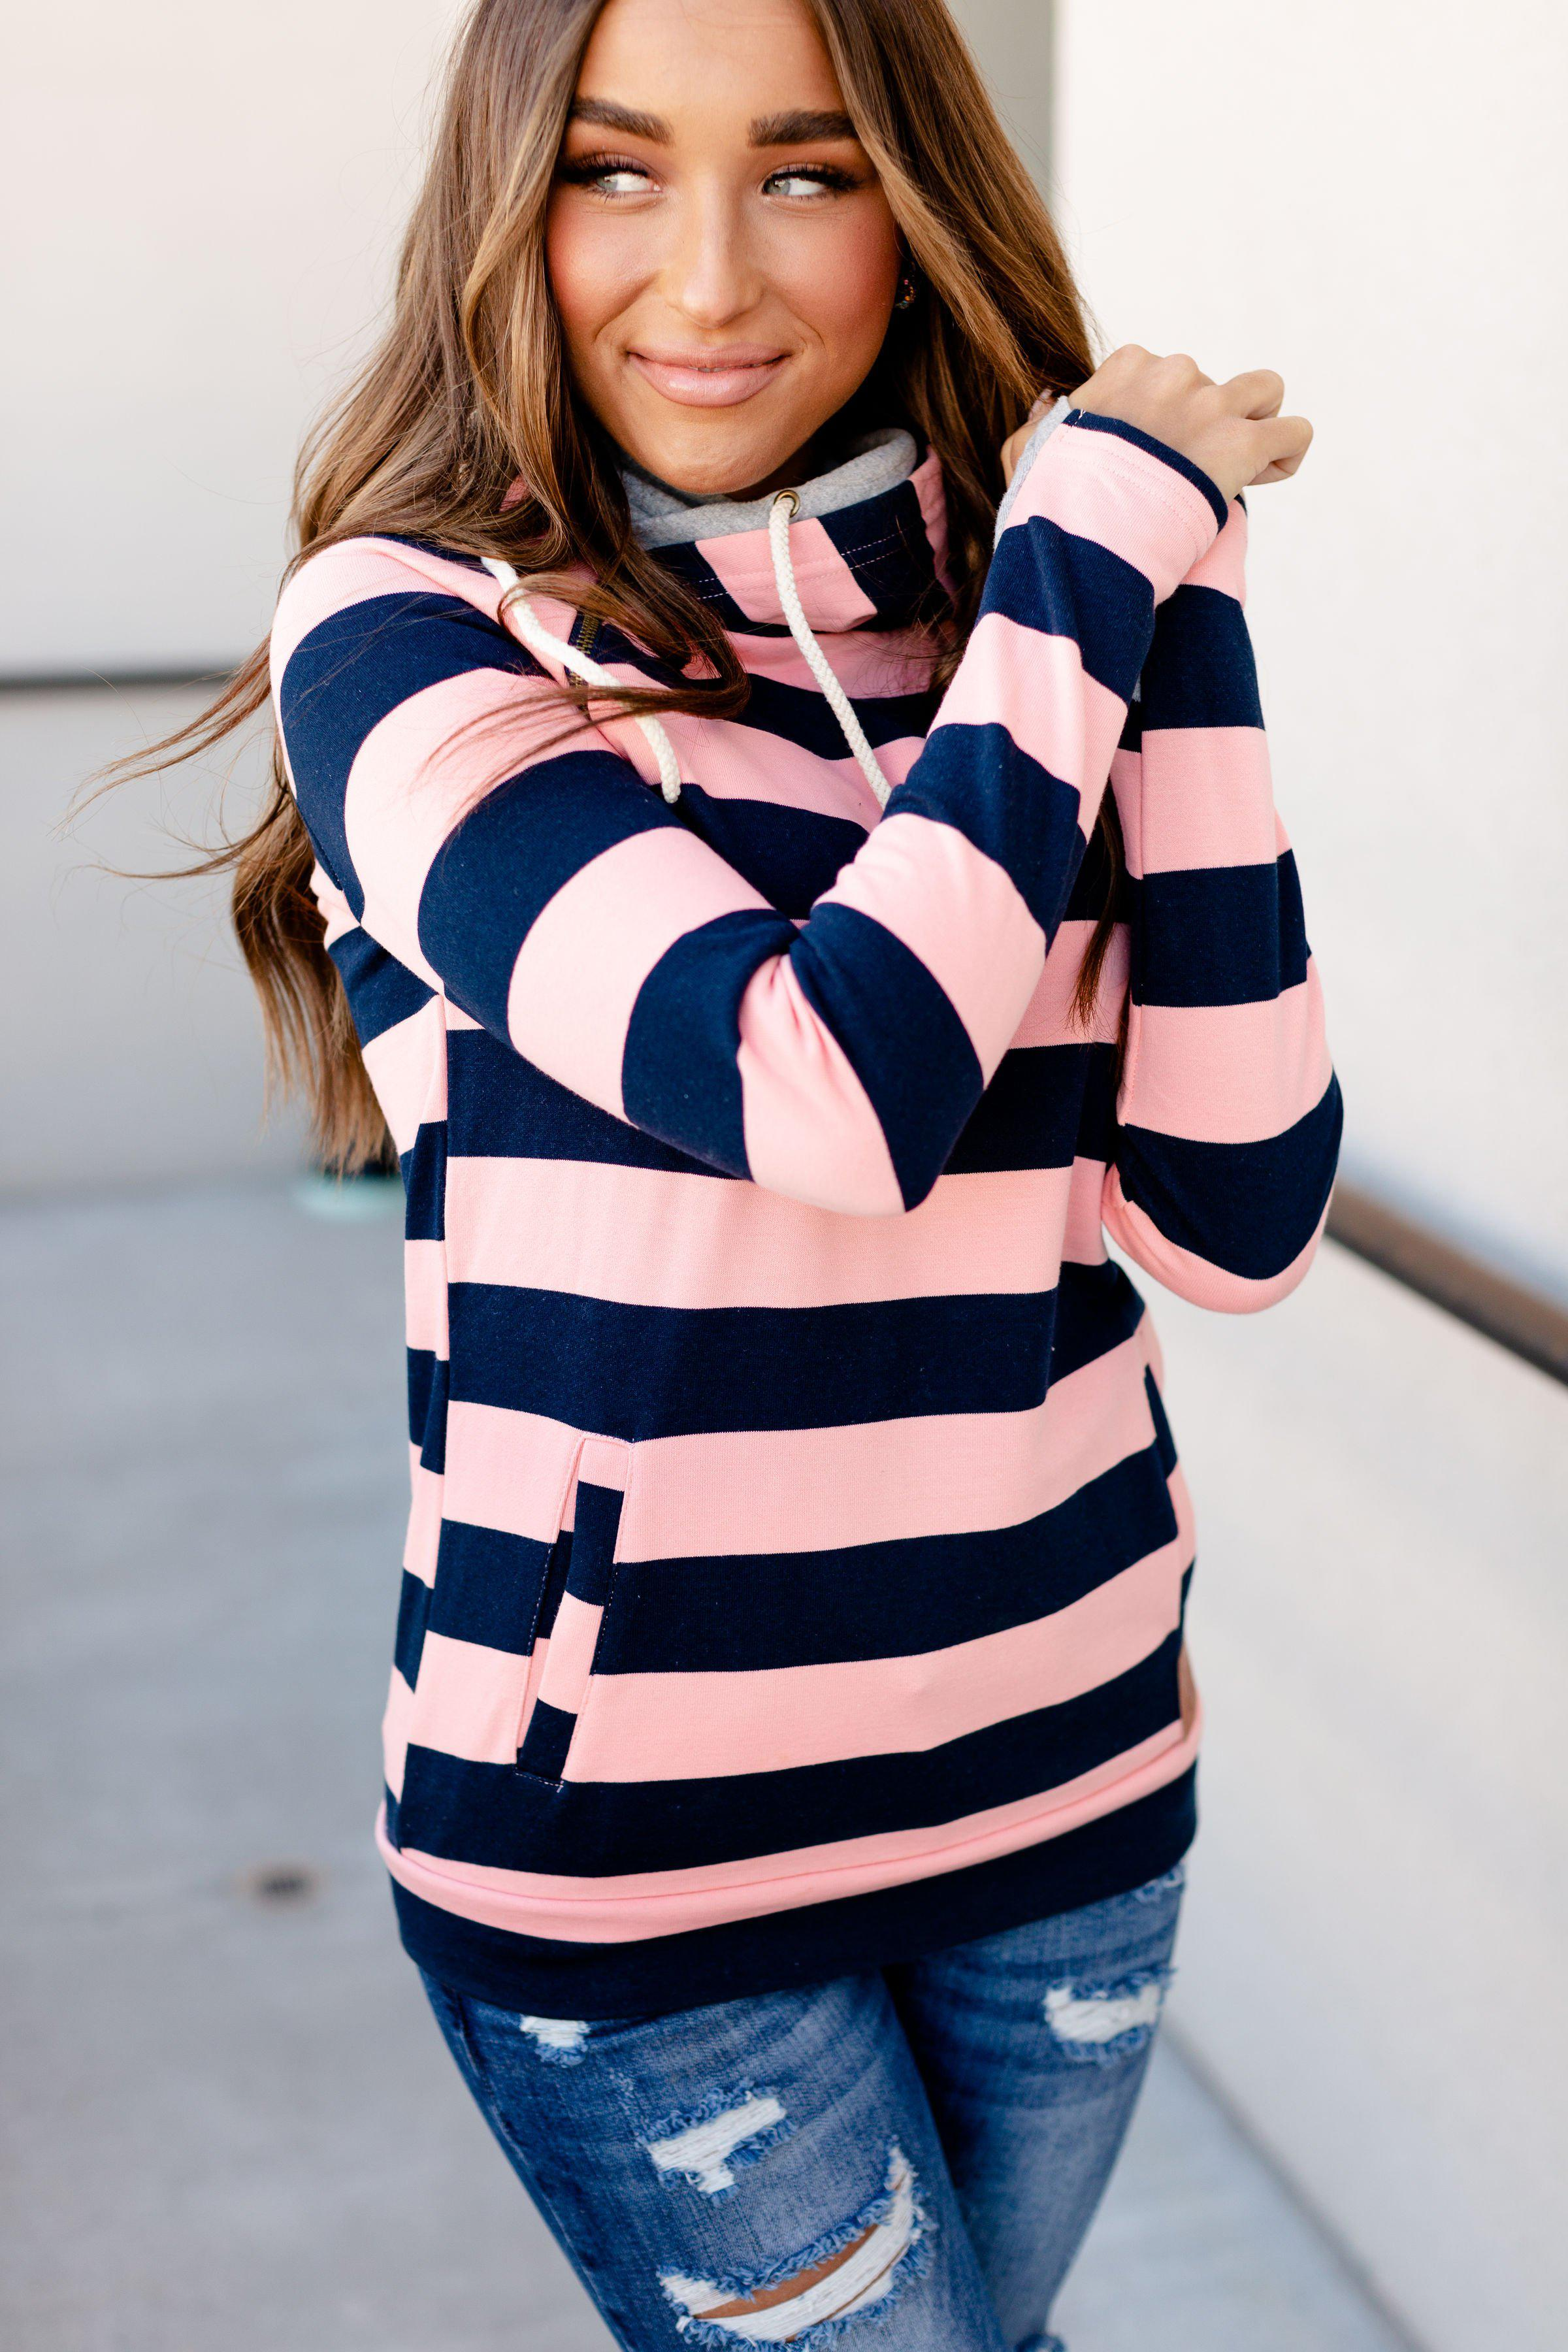 Ampersand Ave Doublehood Sweatshirt - Set Sail